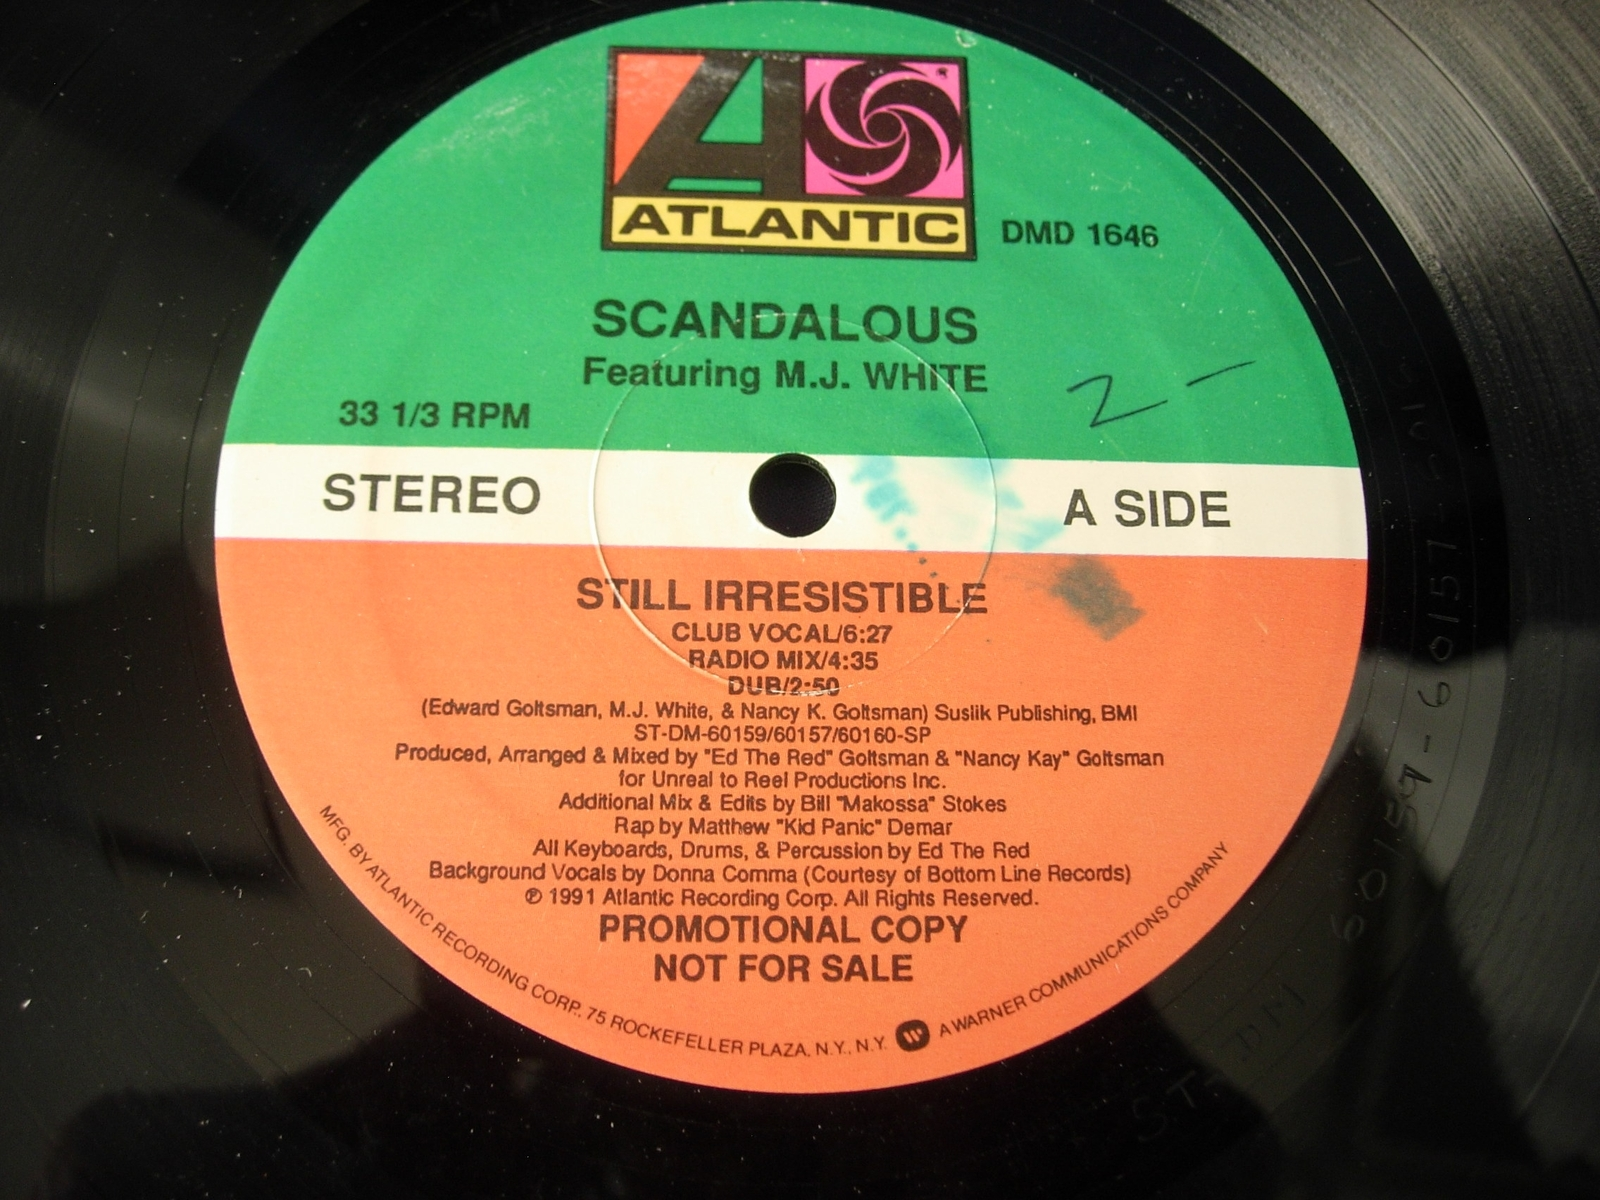 Scandalous - Still Irresistible - Atlantic Records DMD 1646 - PROMO